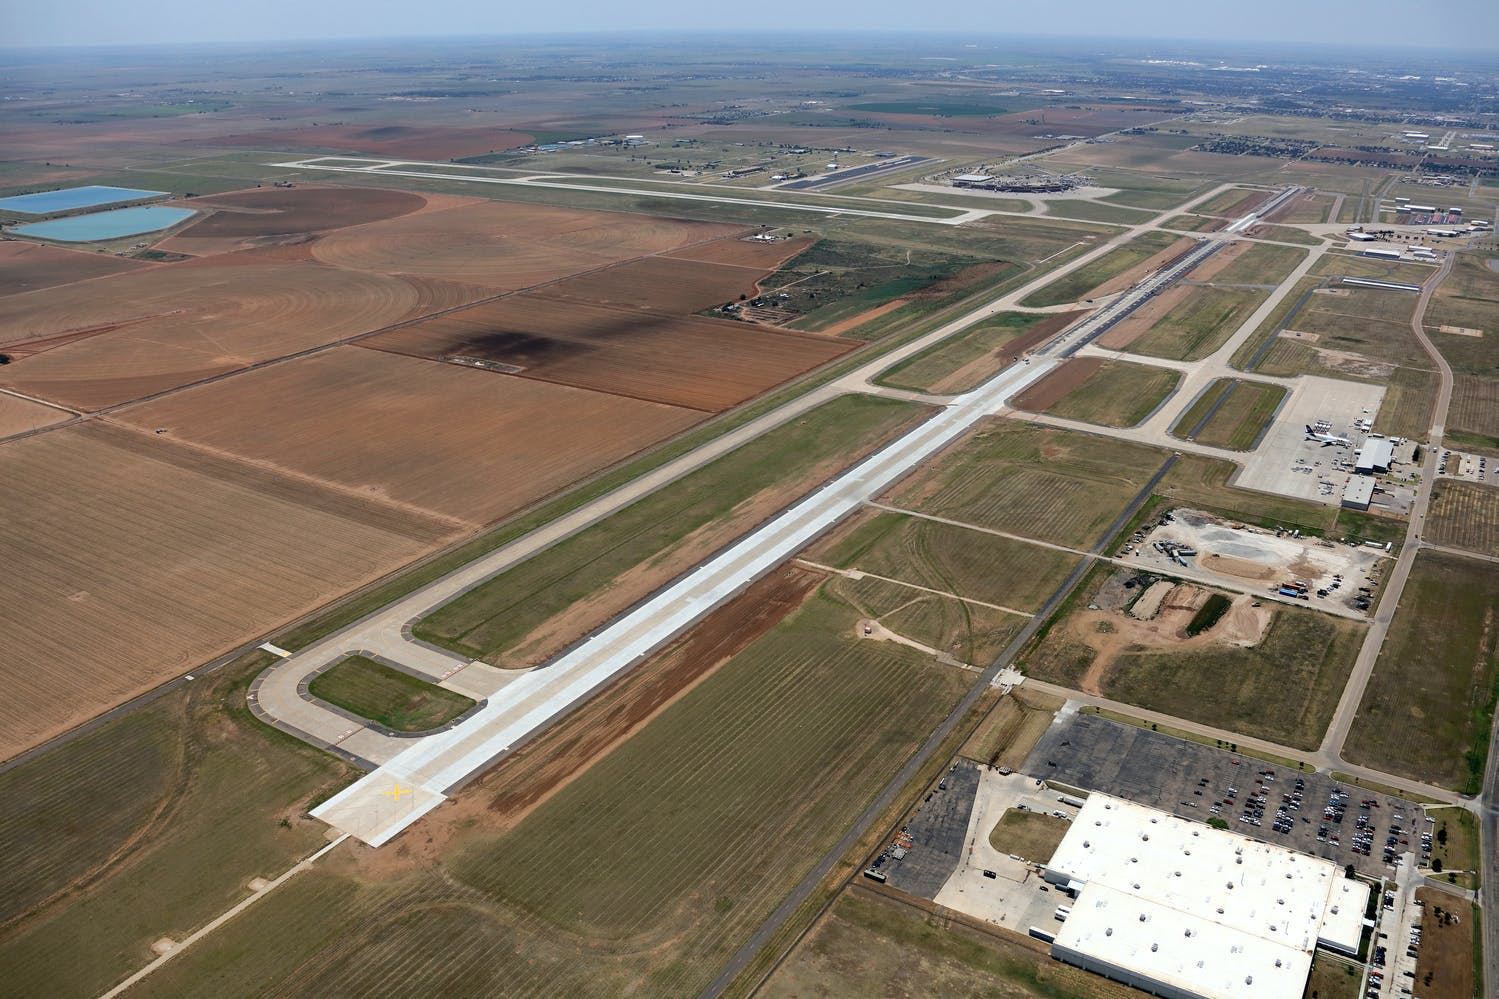 Perryton Airport